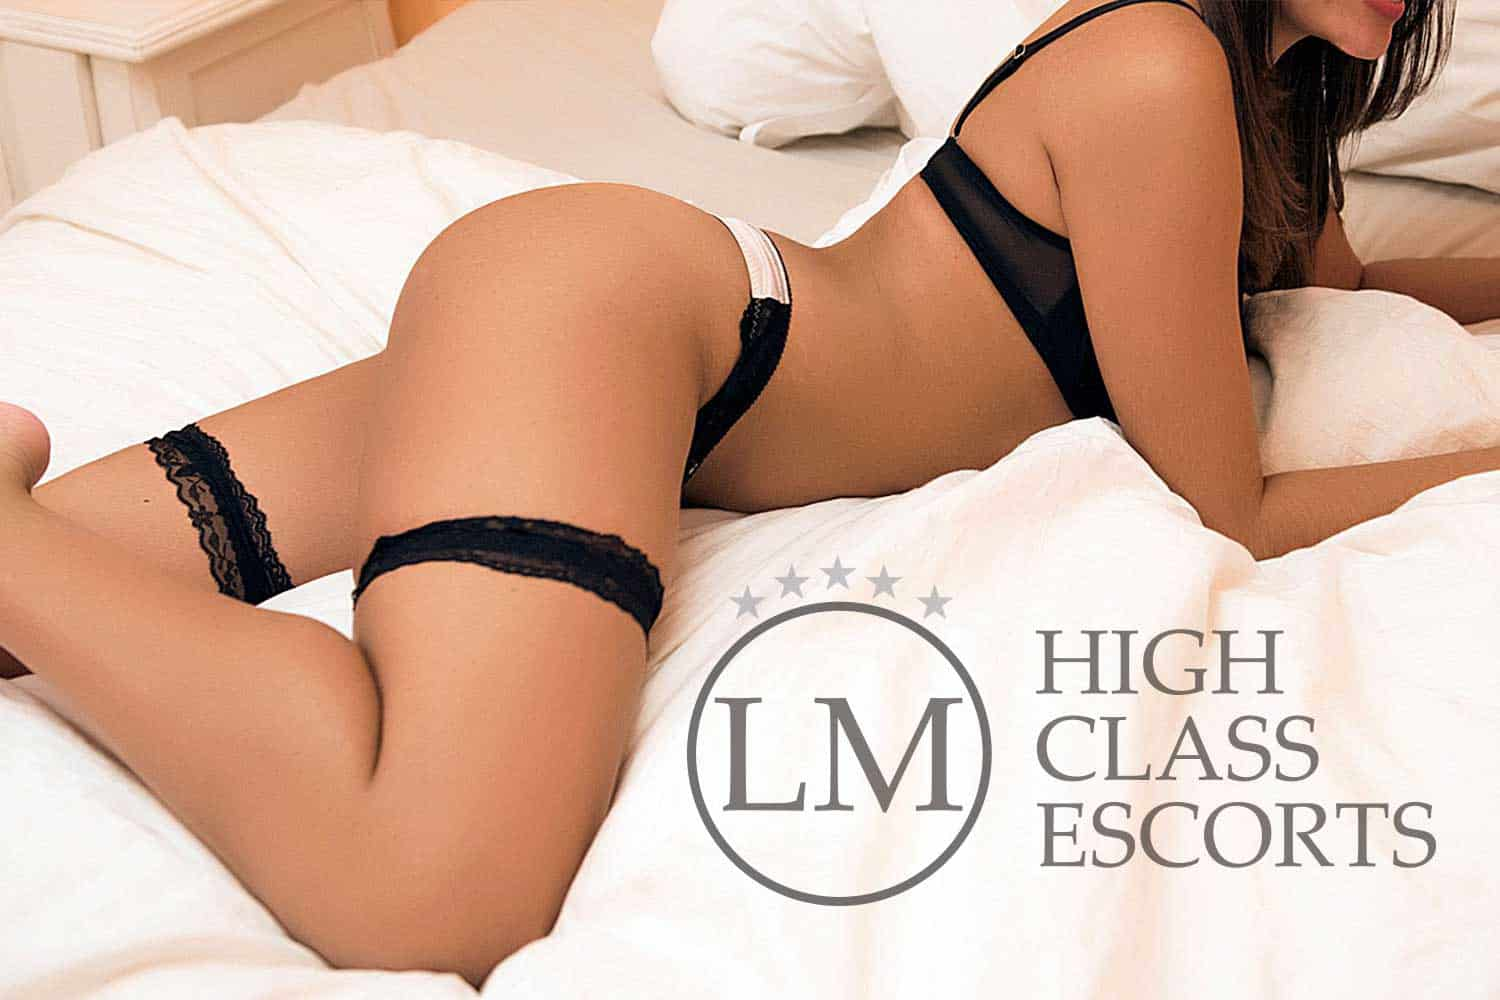 julia escort Madrid